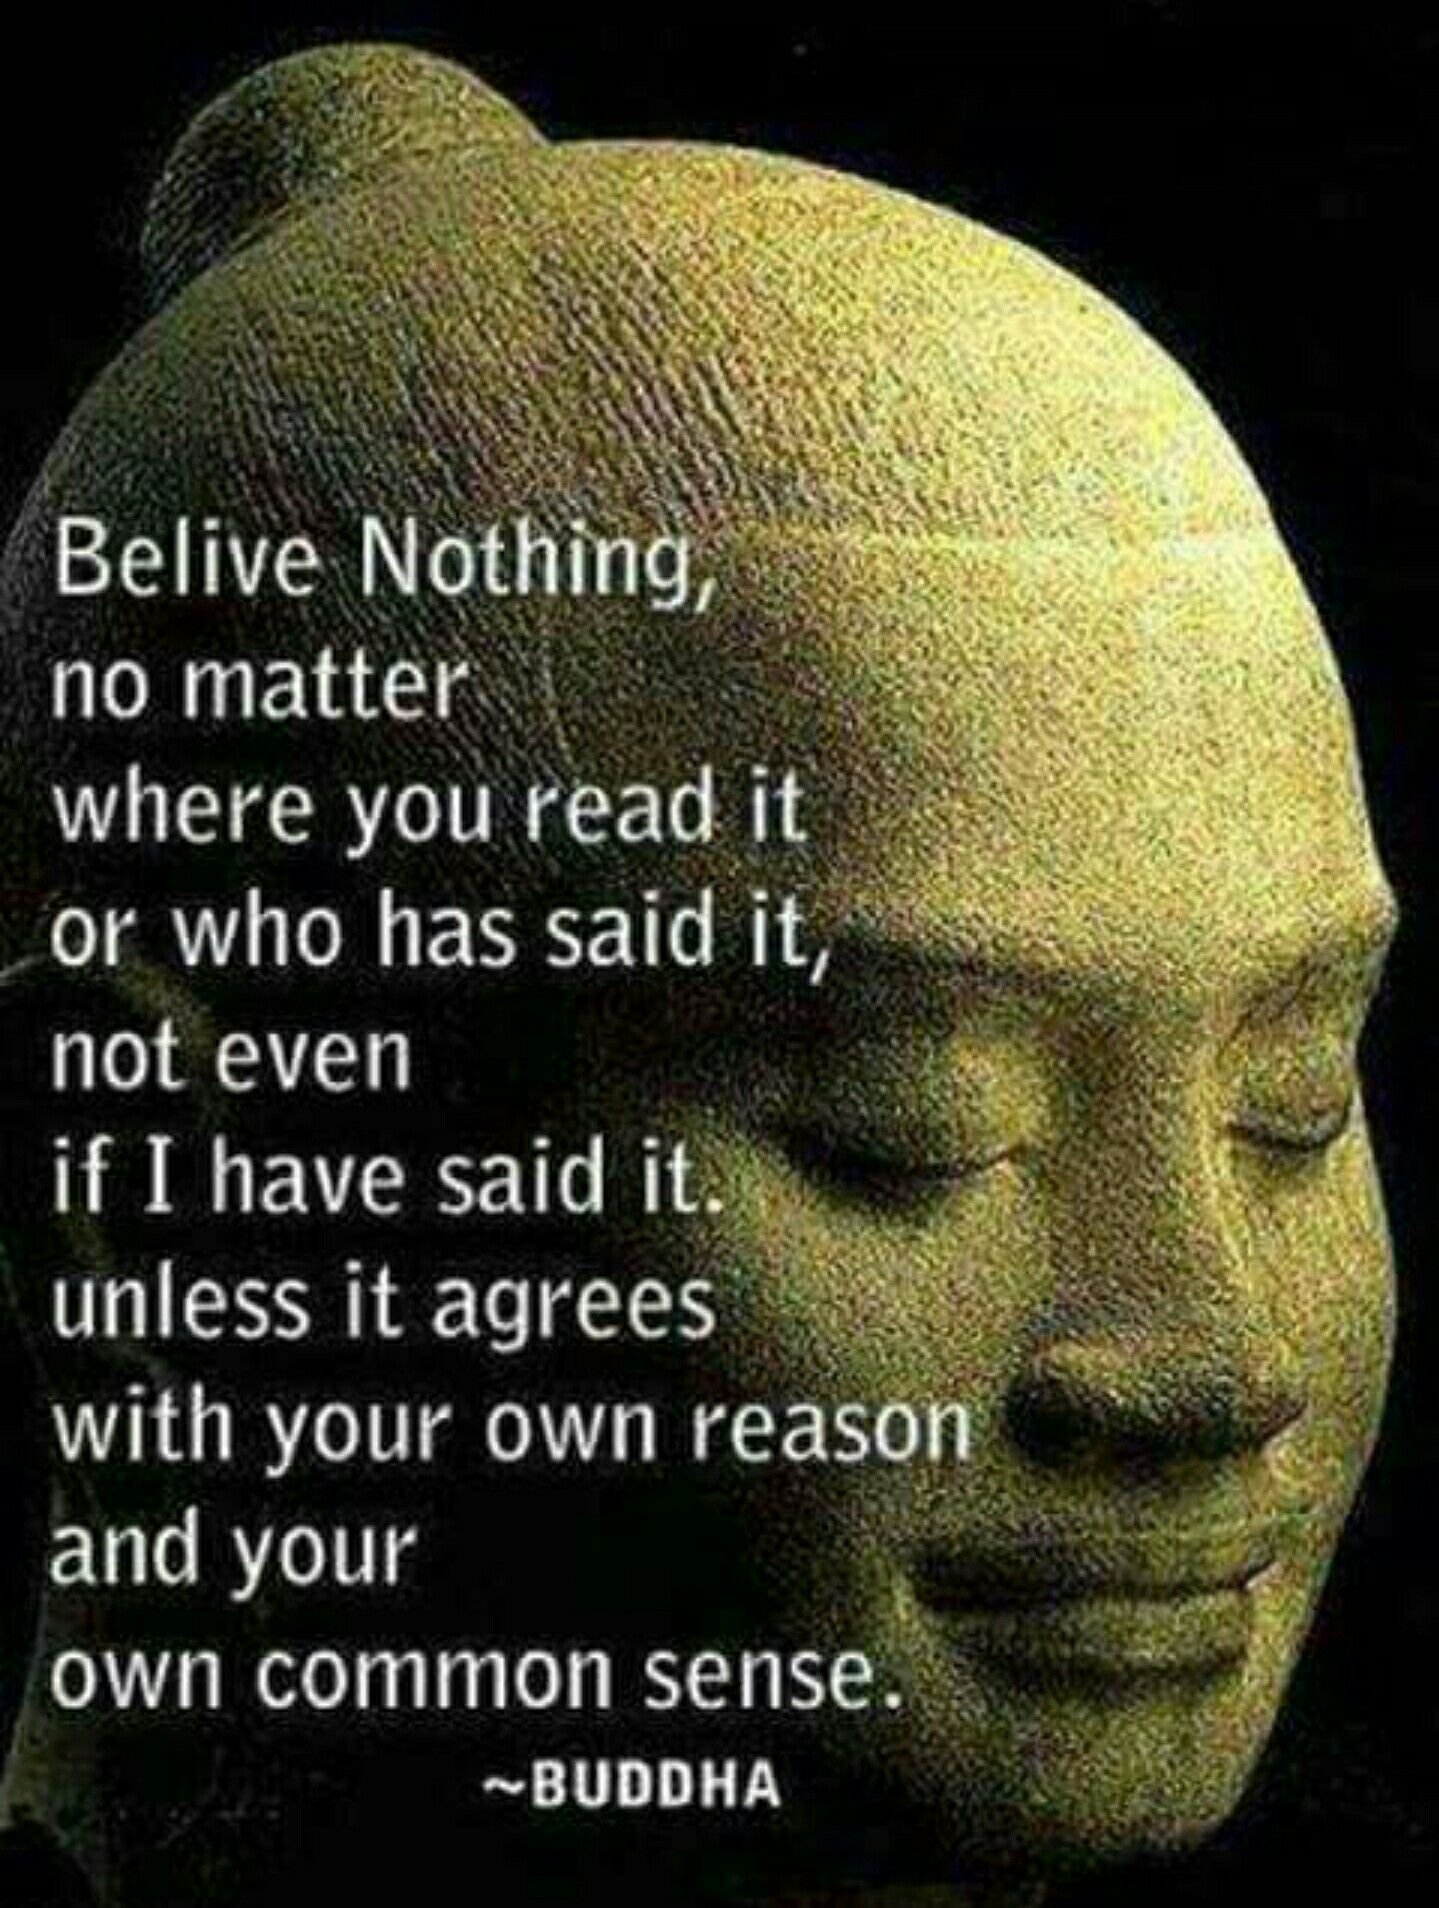 Buddha Quotes About Friendship Believe What Is Real Quotes  Pinterest  Buddhism Wisdom And